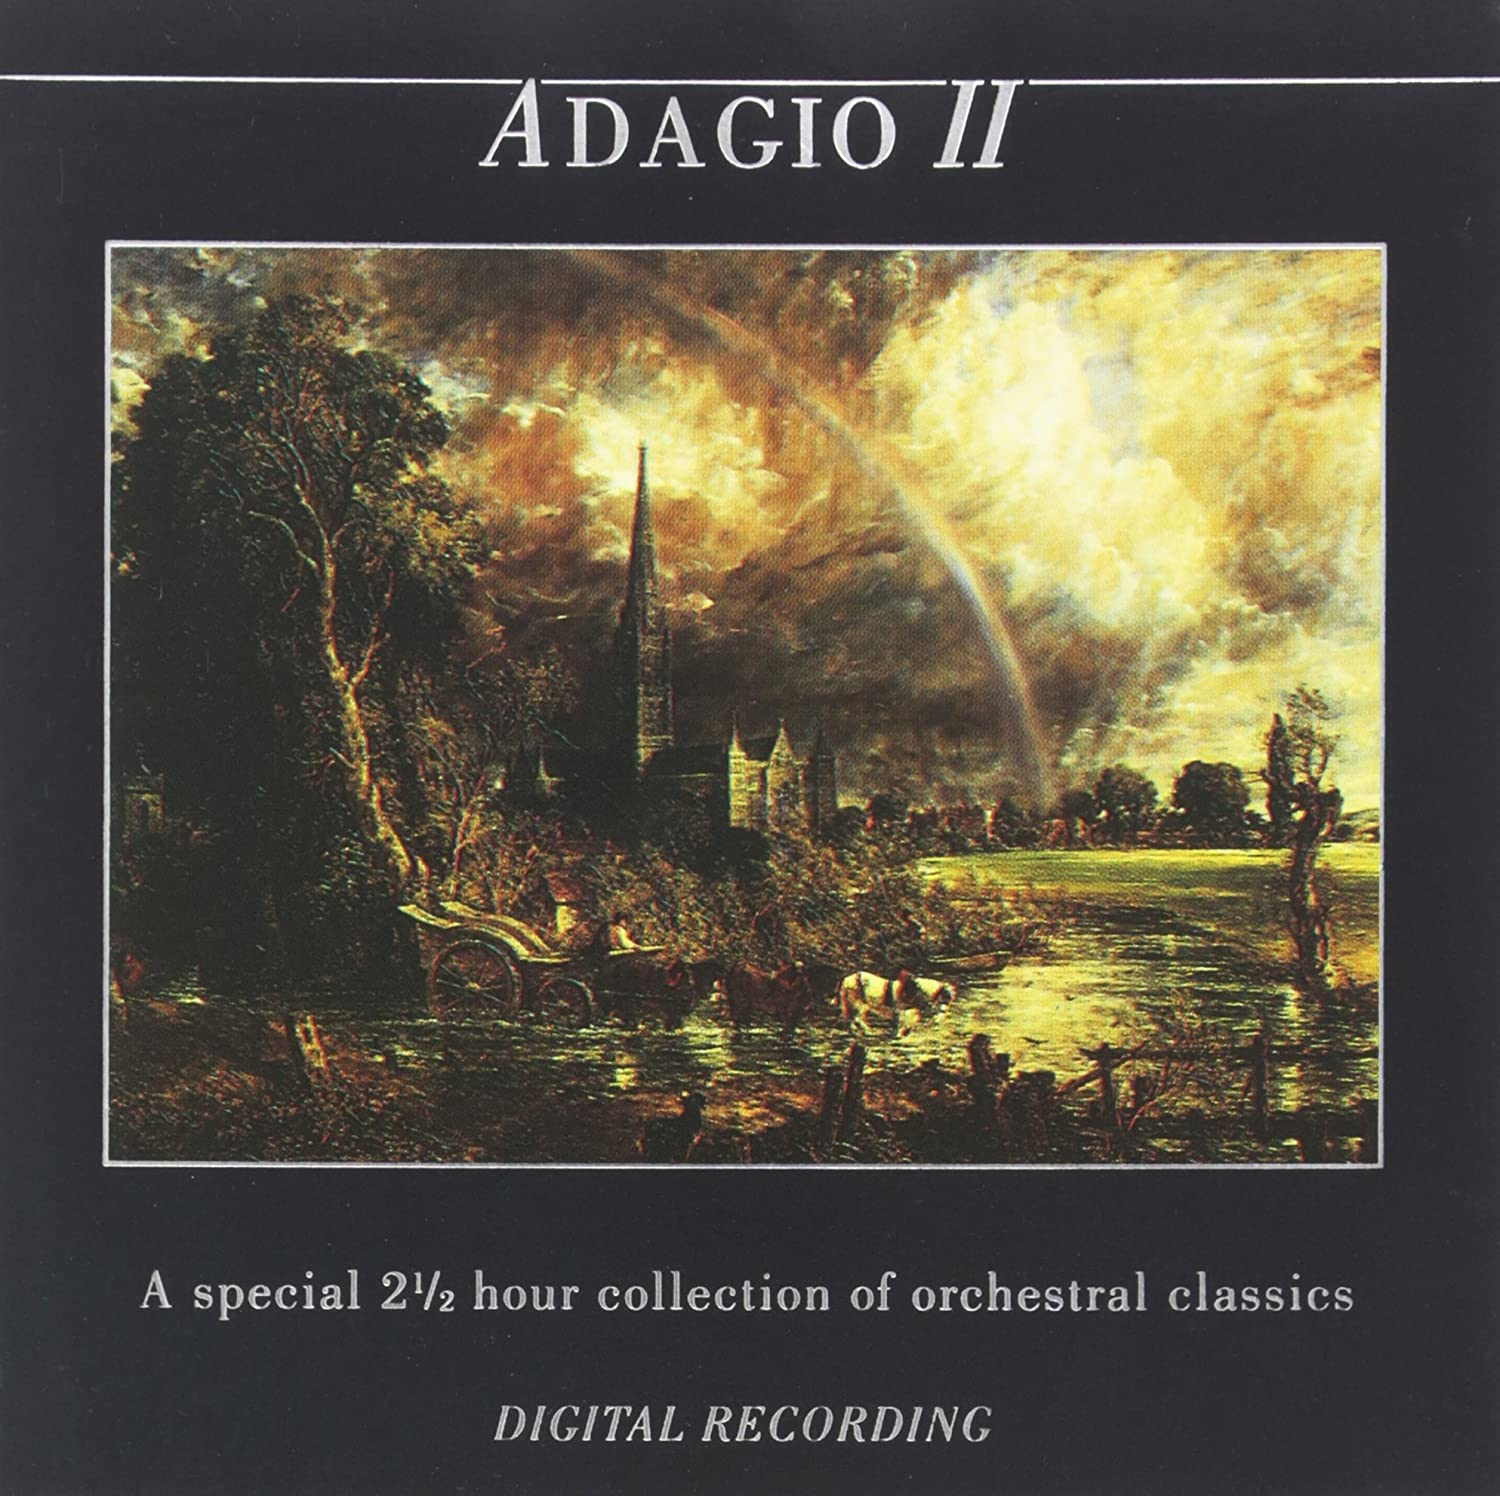 Adagio II - A Special 2 1/2 Hour Collection Of Orchestral Classics